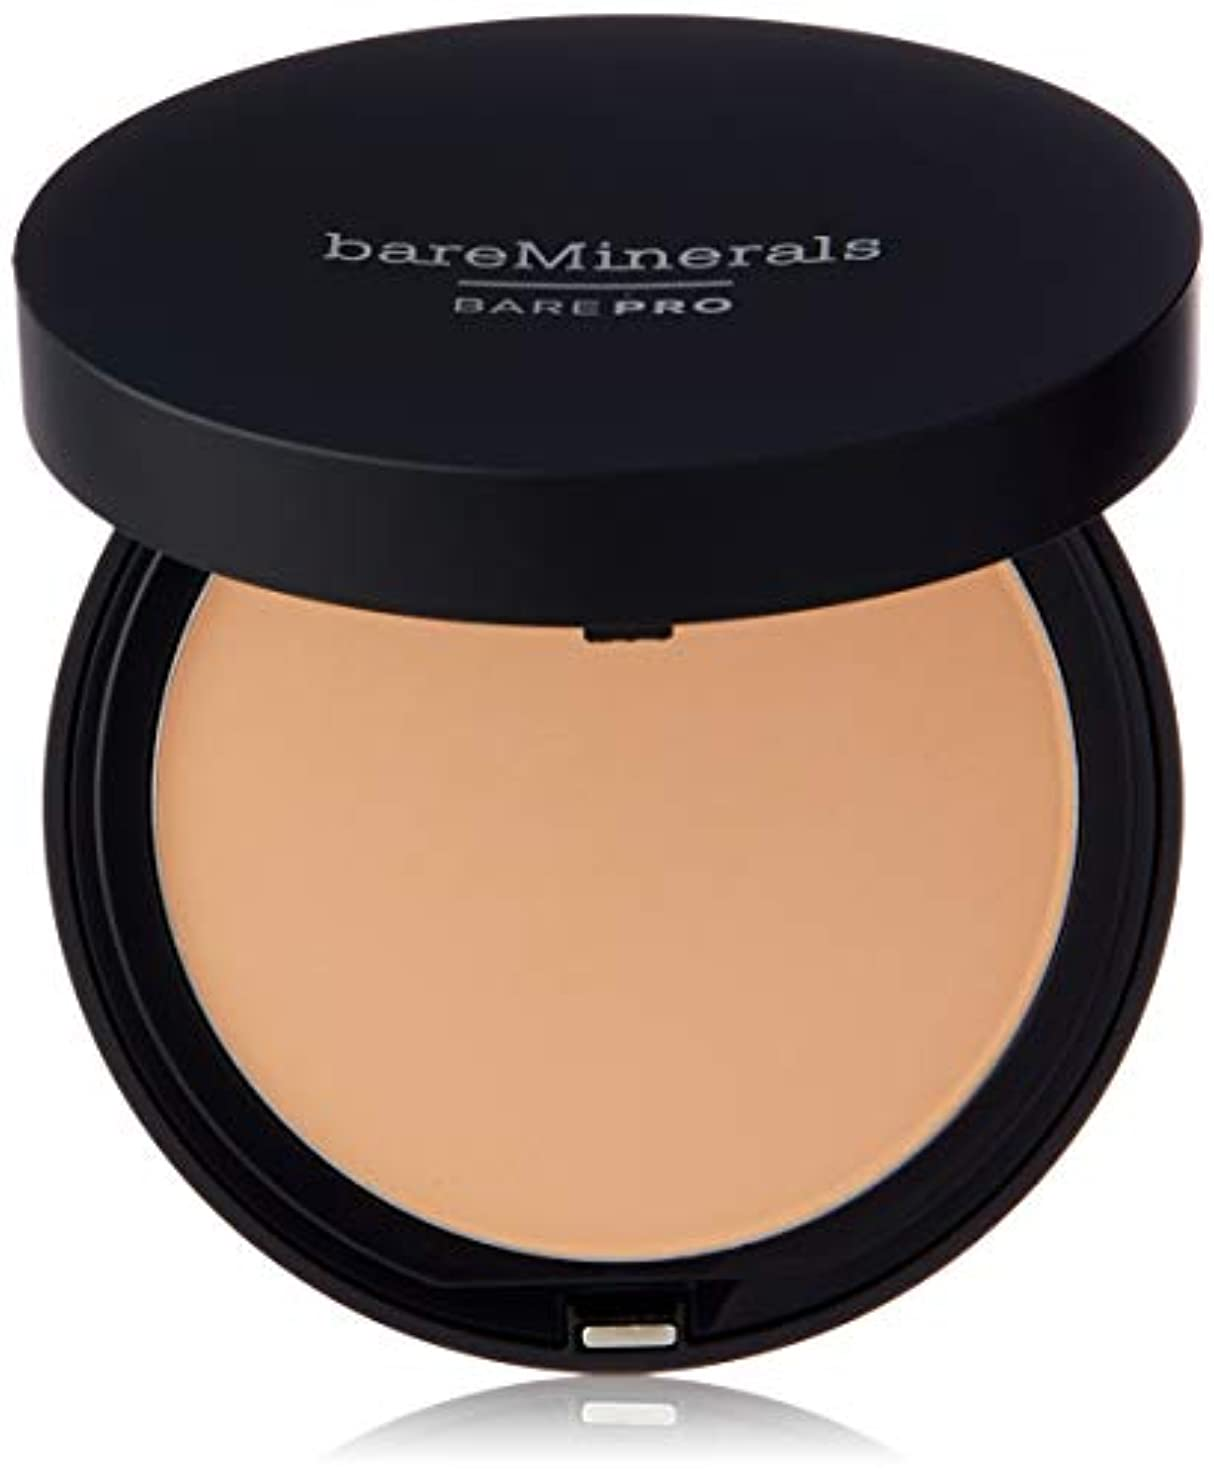 栄光有益宝ベアミネラル BarePro Performance Wear Powder Foundation - # 04 Aspen 10g/0.34oz並行輸入品